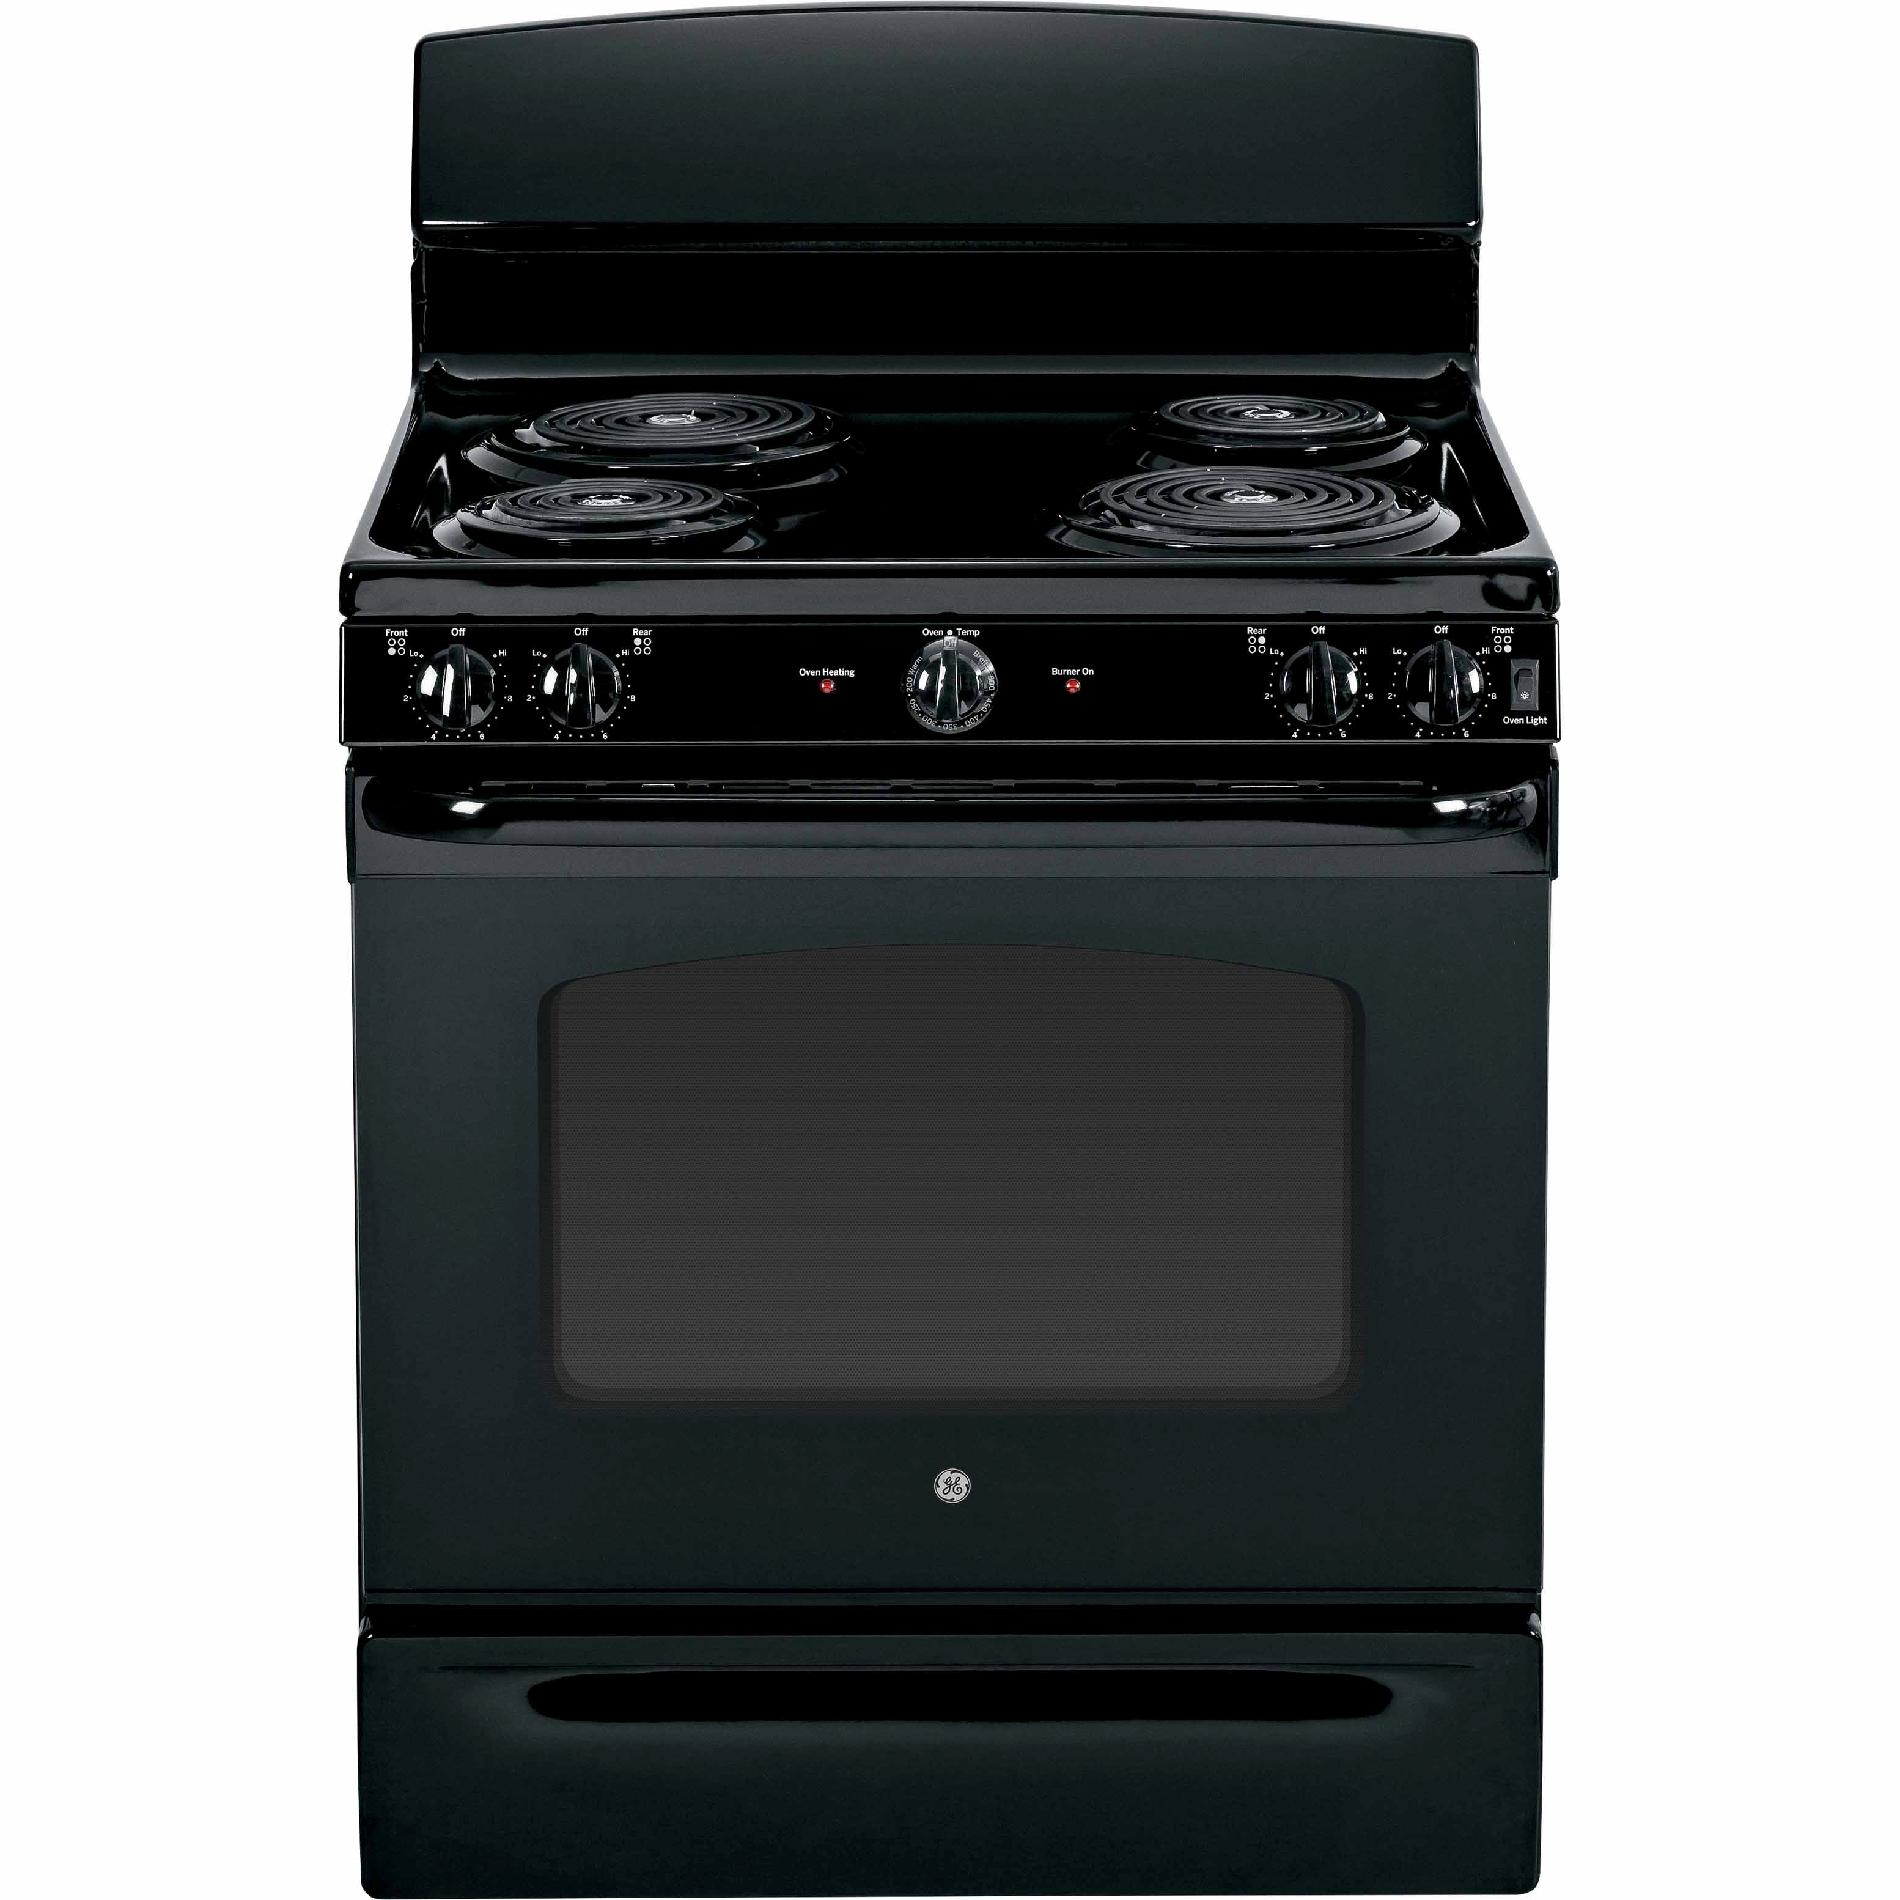 GE Appliances JBS45DFBB 5.0 cu. ft. Electric Range - Black